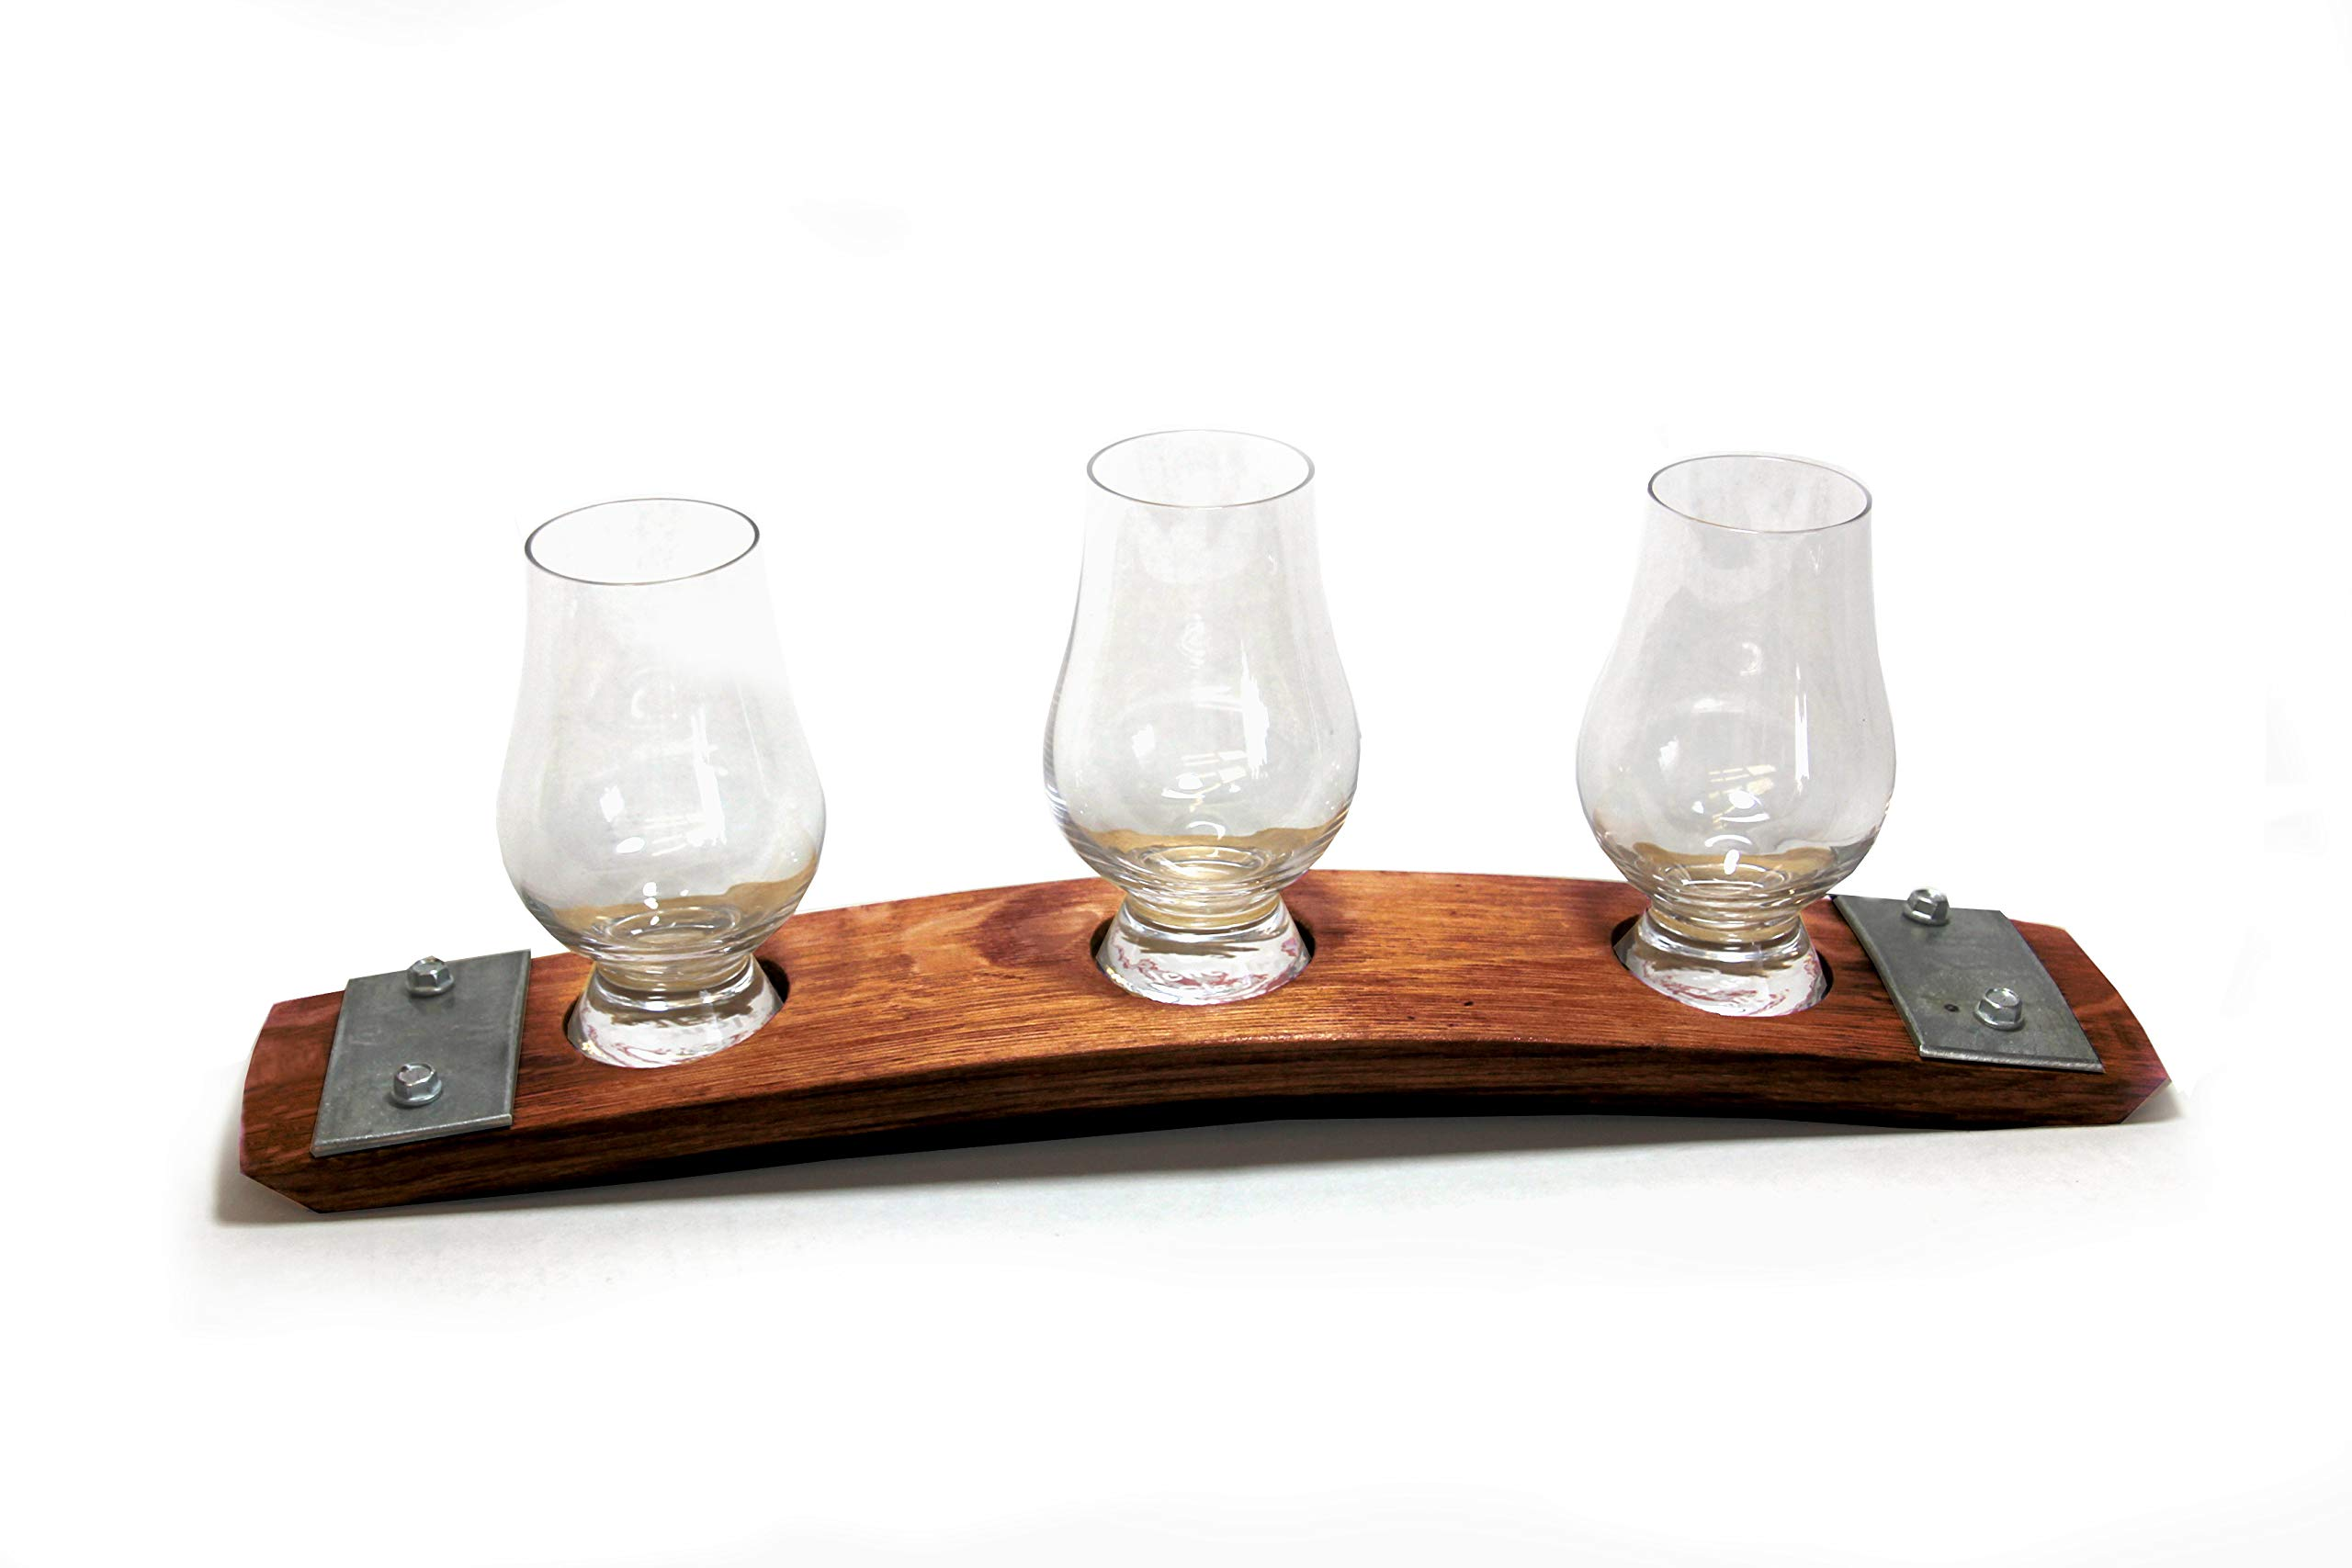 Premium Barrel Stave Whiskey Flight, Scotch Flight, Bourbon Flight, Crystal Glencairn Glass Flight (Red Mahogany) by Barrel-Art (Image #1)